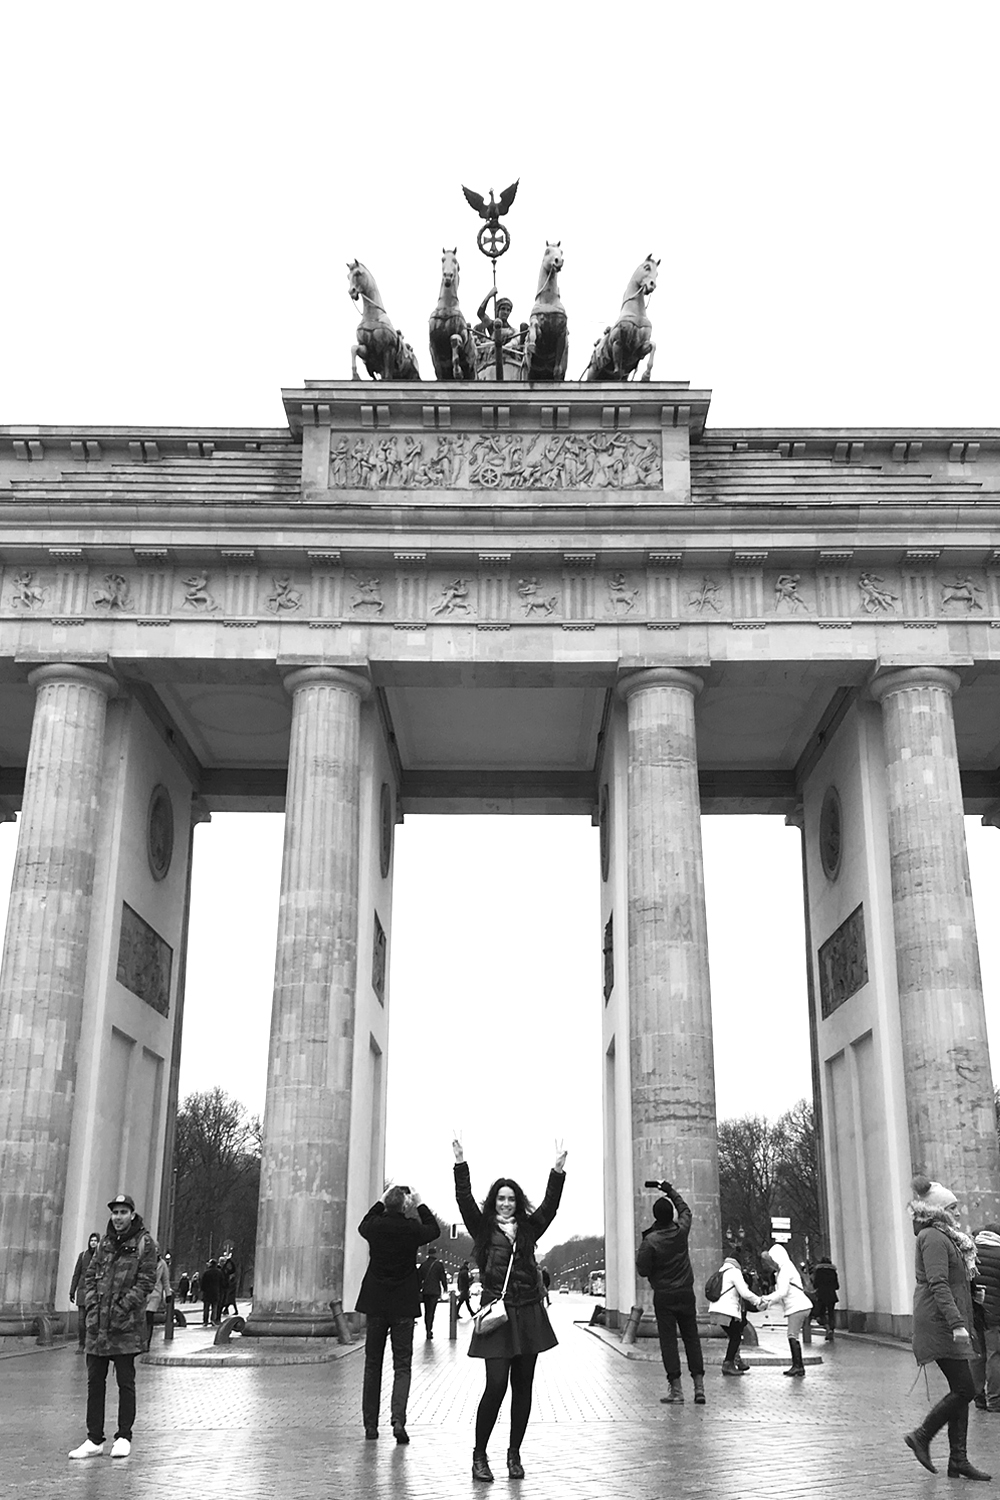 Emma Louise Layla at the Brandenburg Gate in Berlin - travel & lifestyle blog